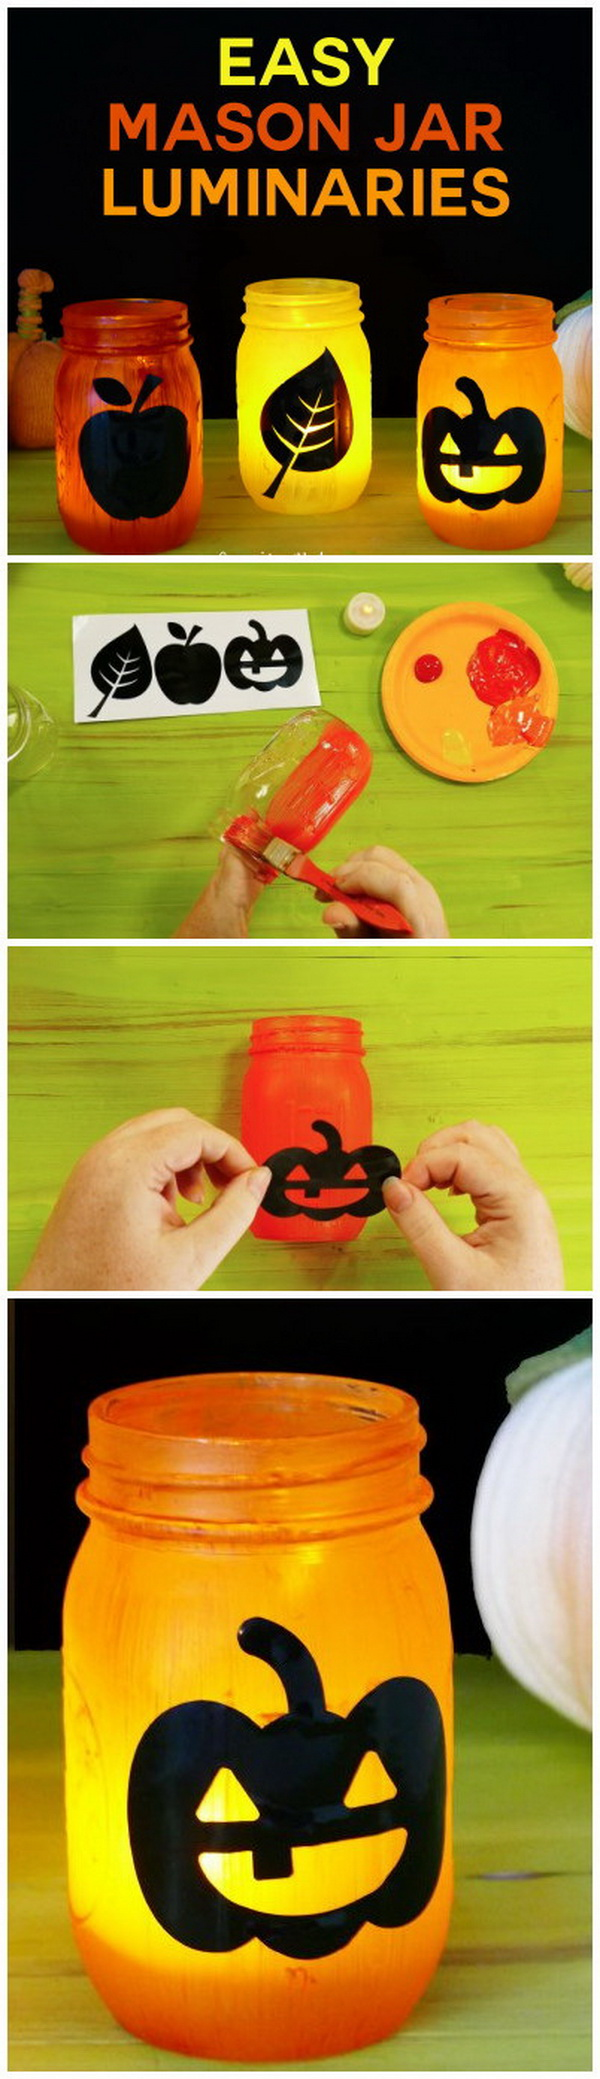 Easy Mason Jar Luminaries. These mason jar luminaries are super easy to make and pretty to add to your fall or halloween decor!